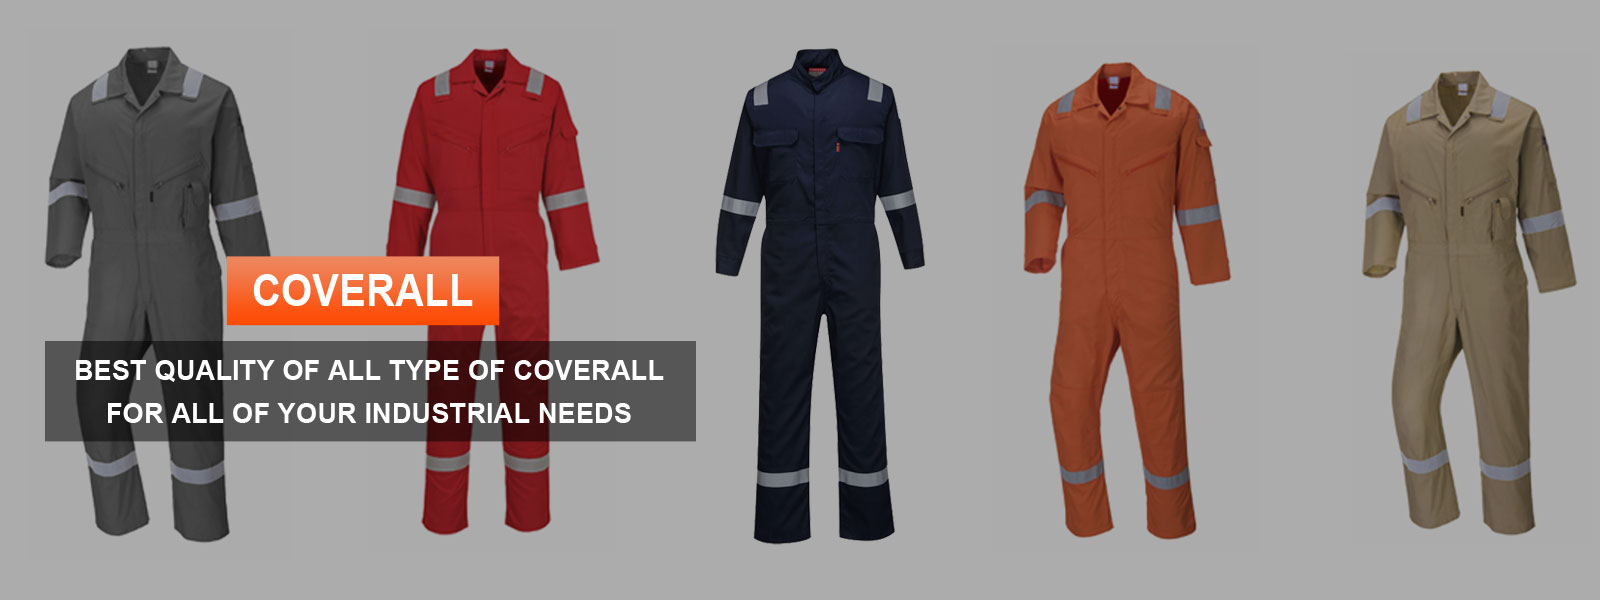 Coverall Manufacturers in Singapore